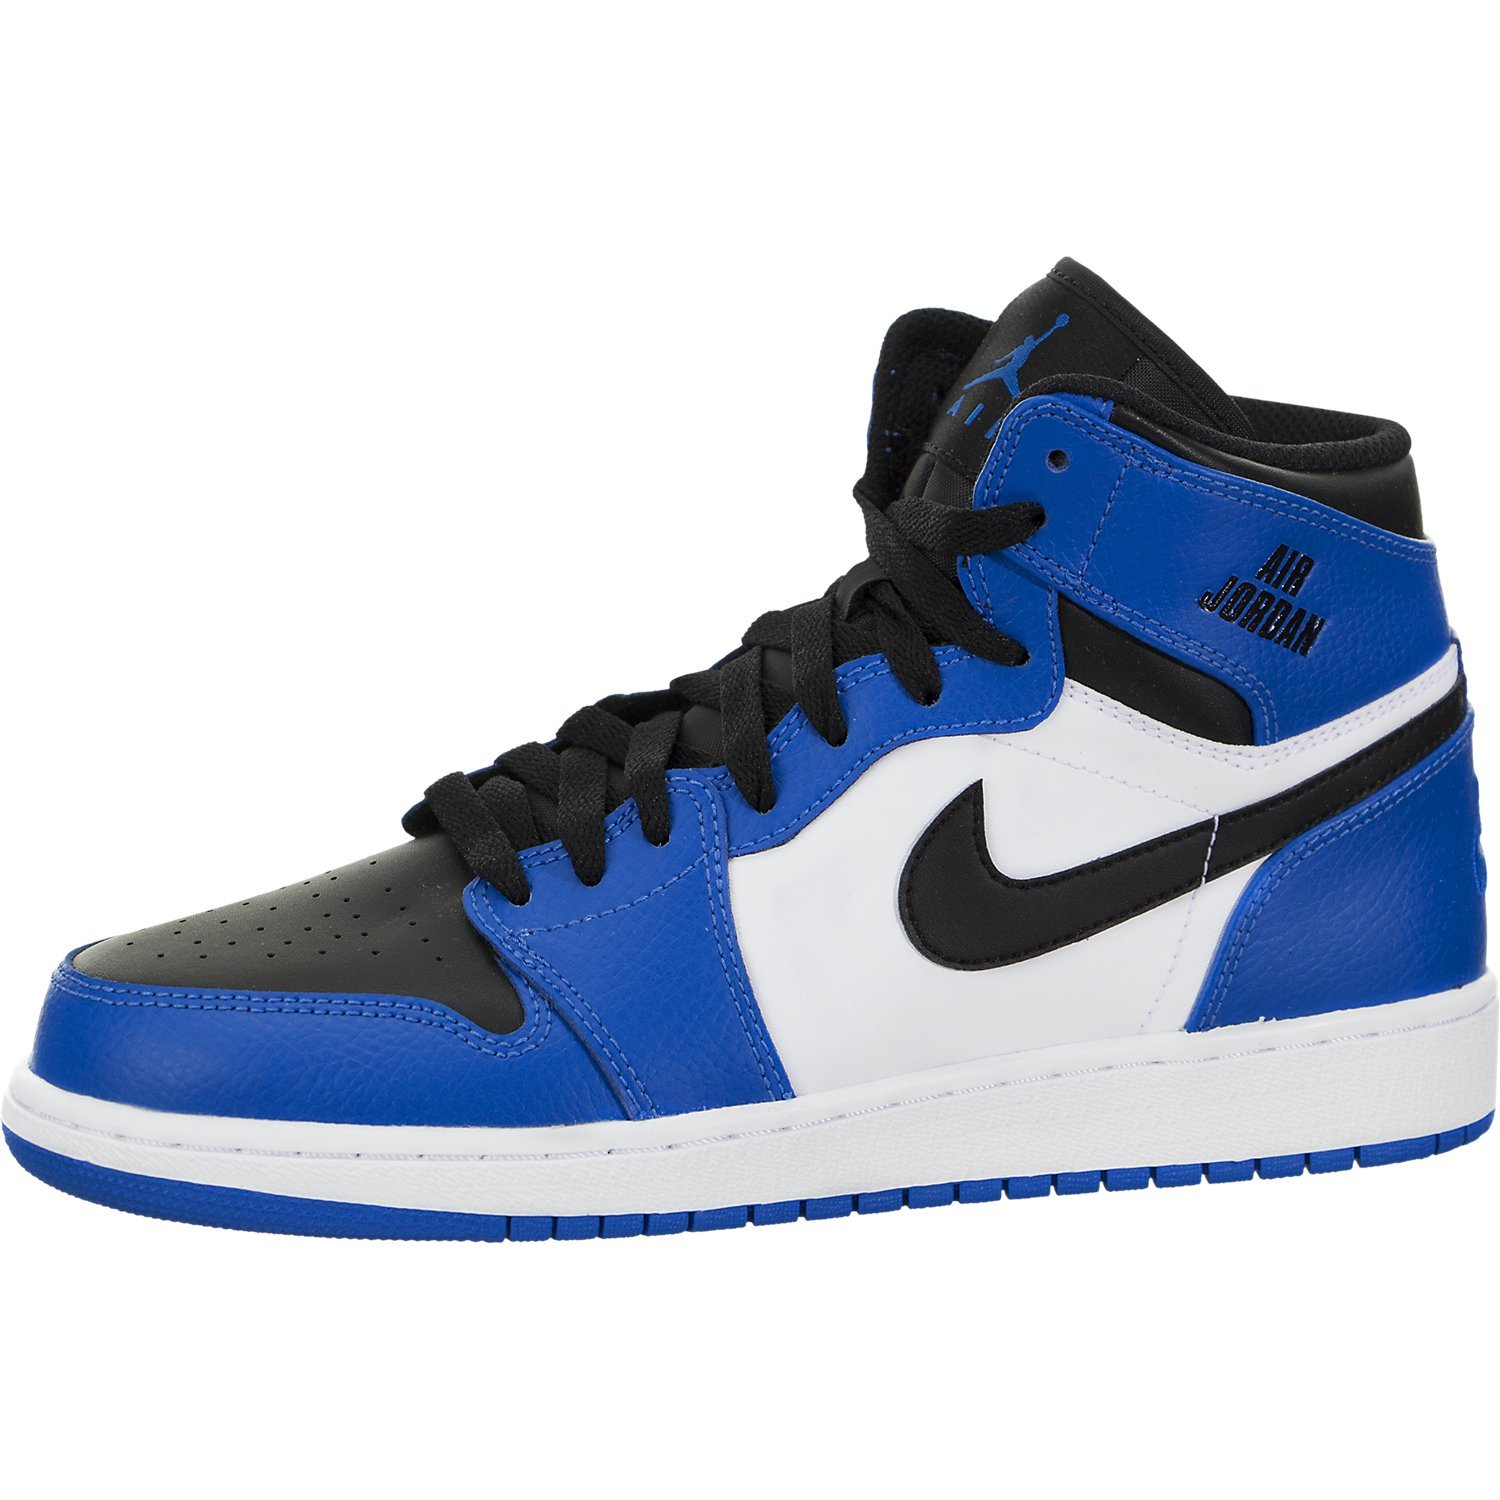 Air Jordan 1 Retro High (Kids) by Jordan